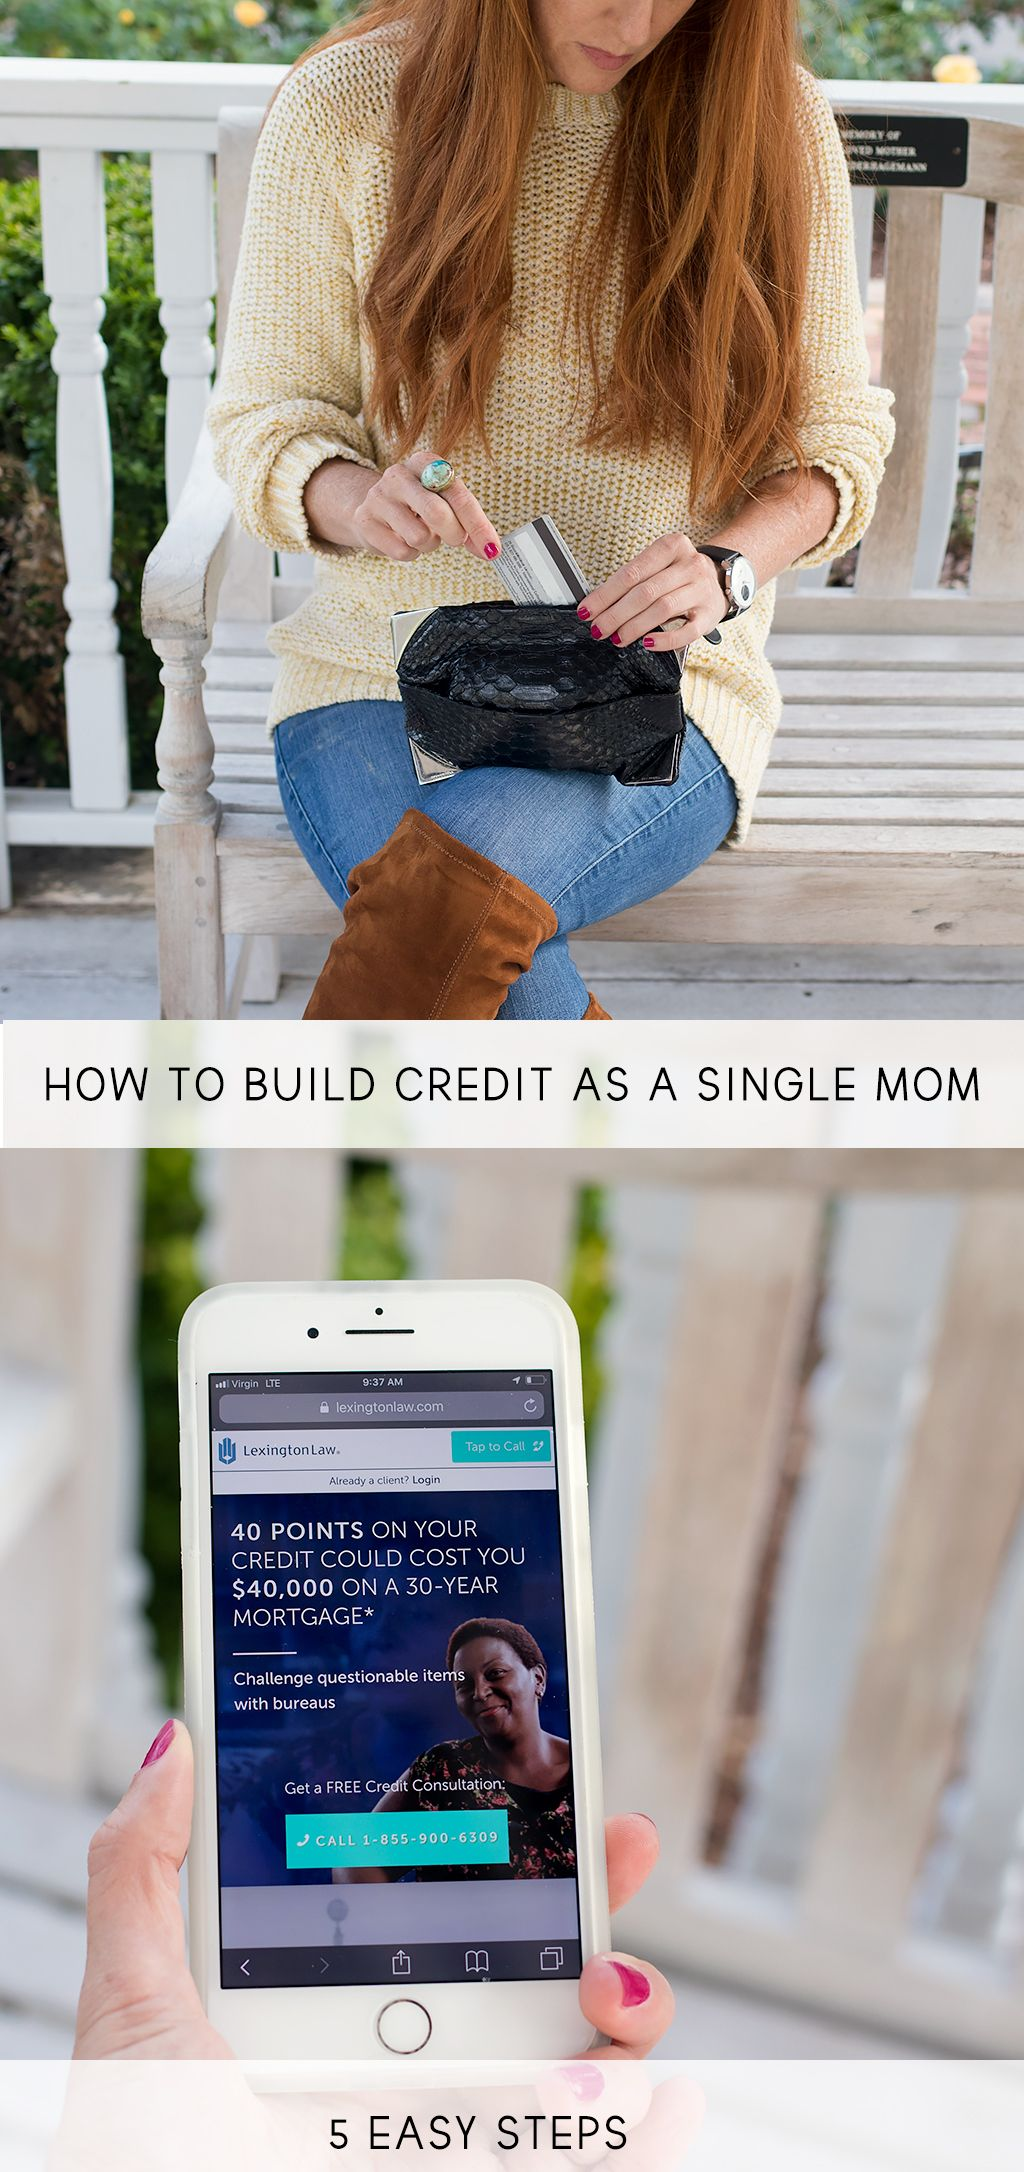 How To Build Credit As A Single Mom 5 Easy Steps To Take Build